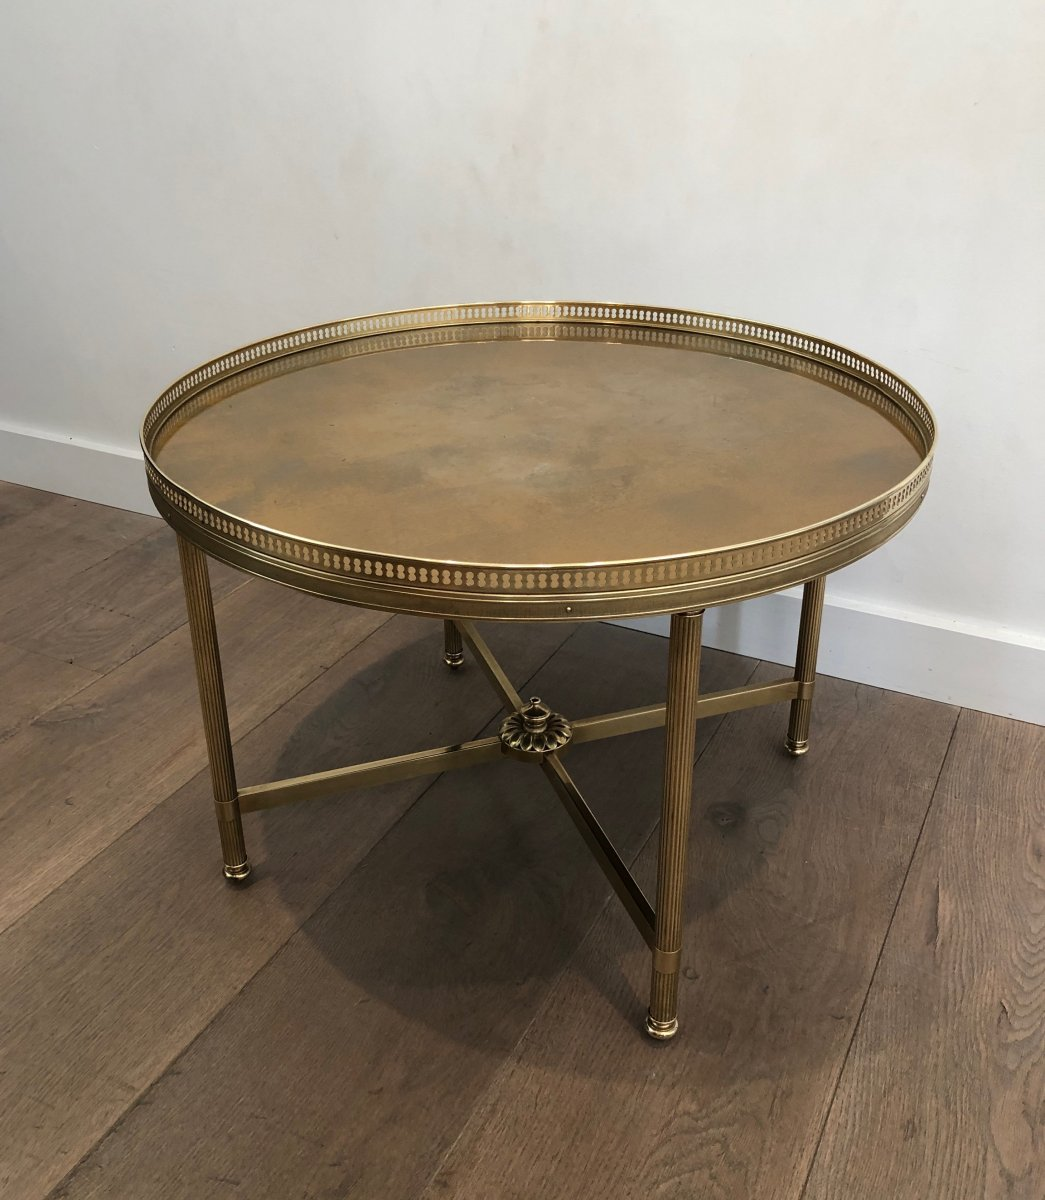 Maison Jansen. Neoclassical Style Small Round Brass Coffee Table With Gold Top. French. 1940's-photo-3